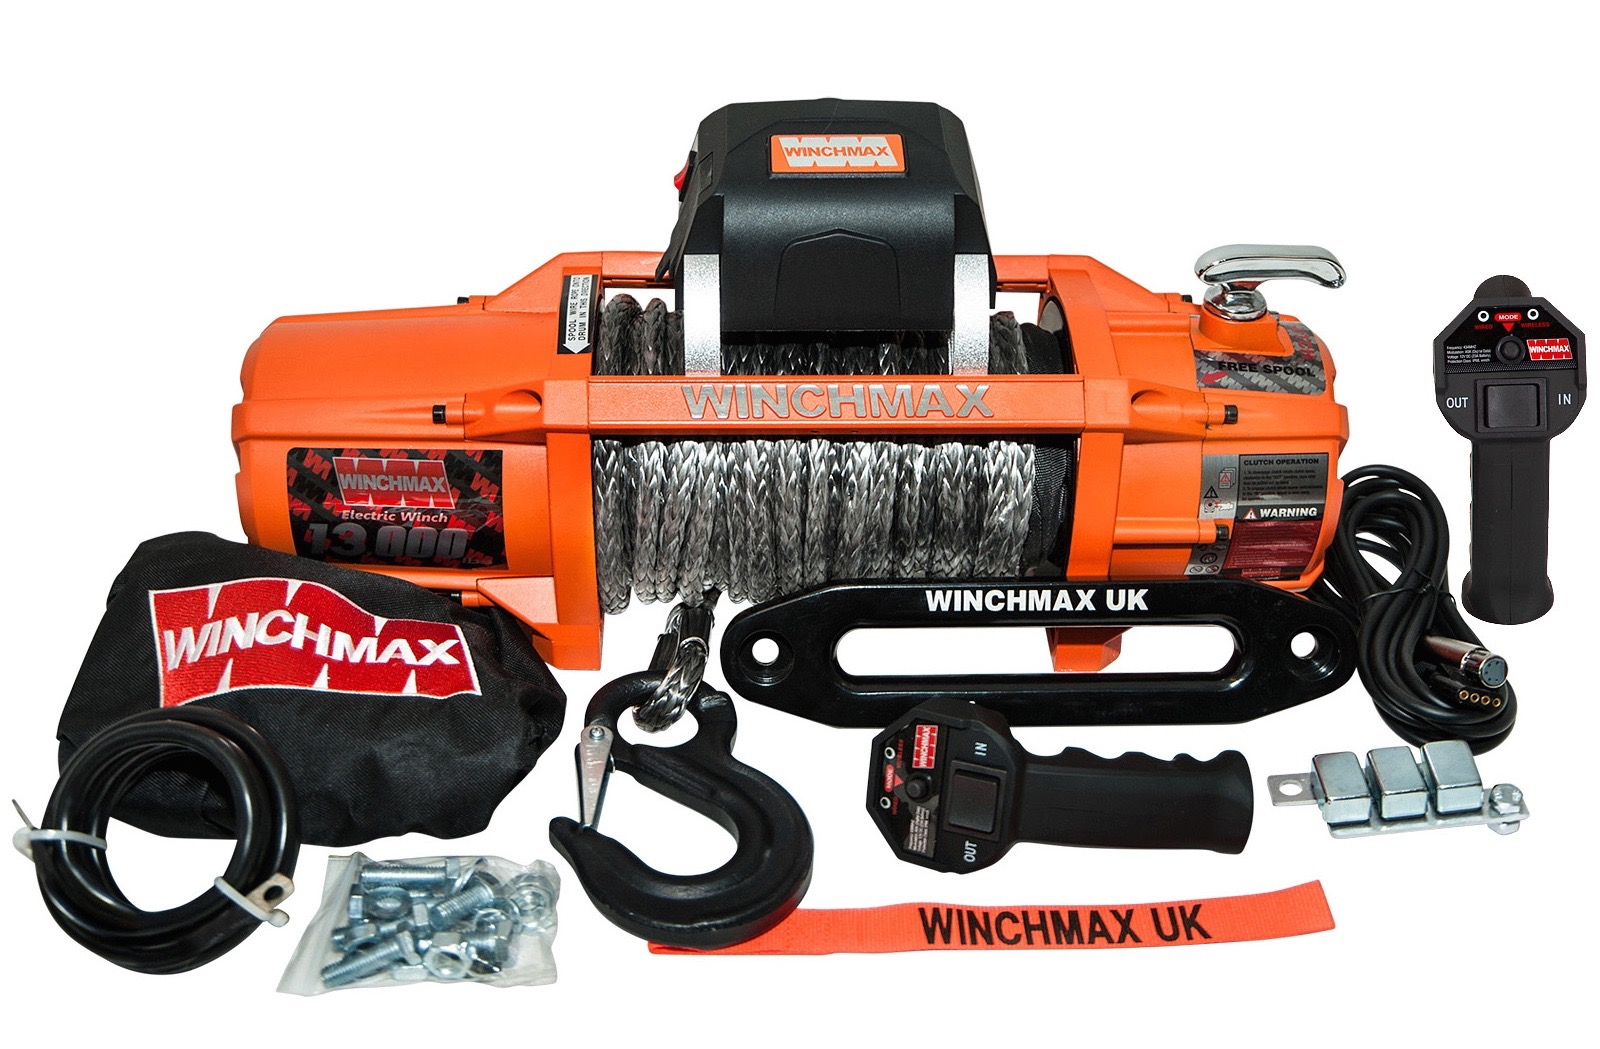 product_view.php?pid= WINCHMAX SL 13500lB 24V ELECTRIC WINCH SYNTHETIC ROPE WITH WIRELESS REMOTES